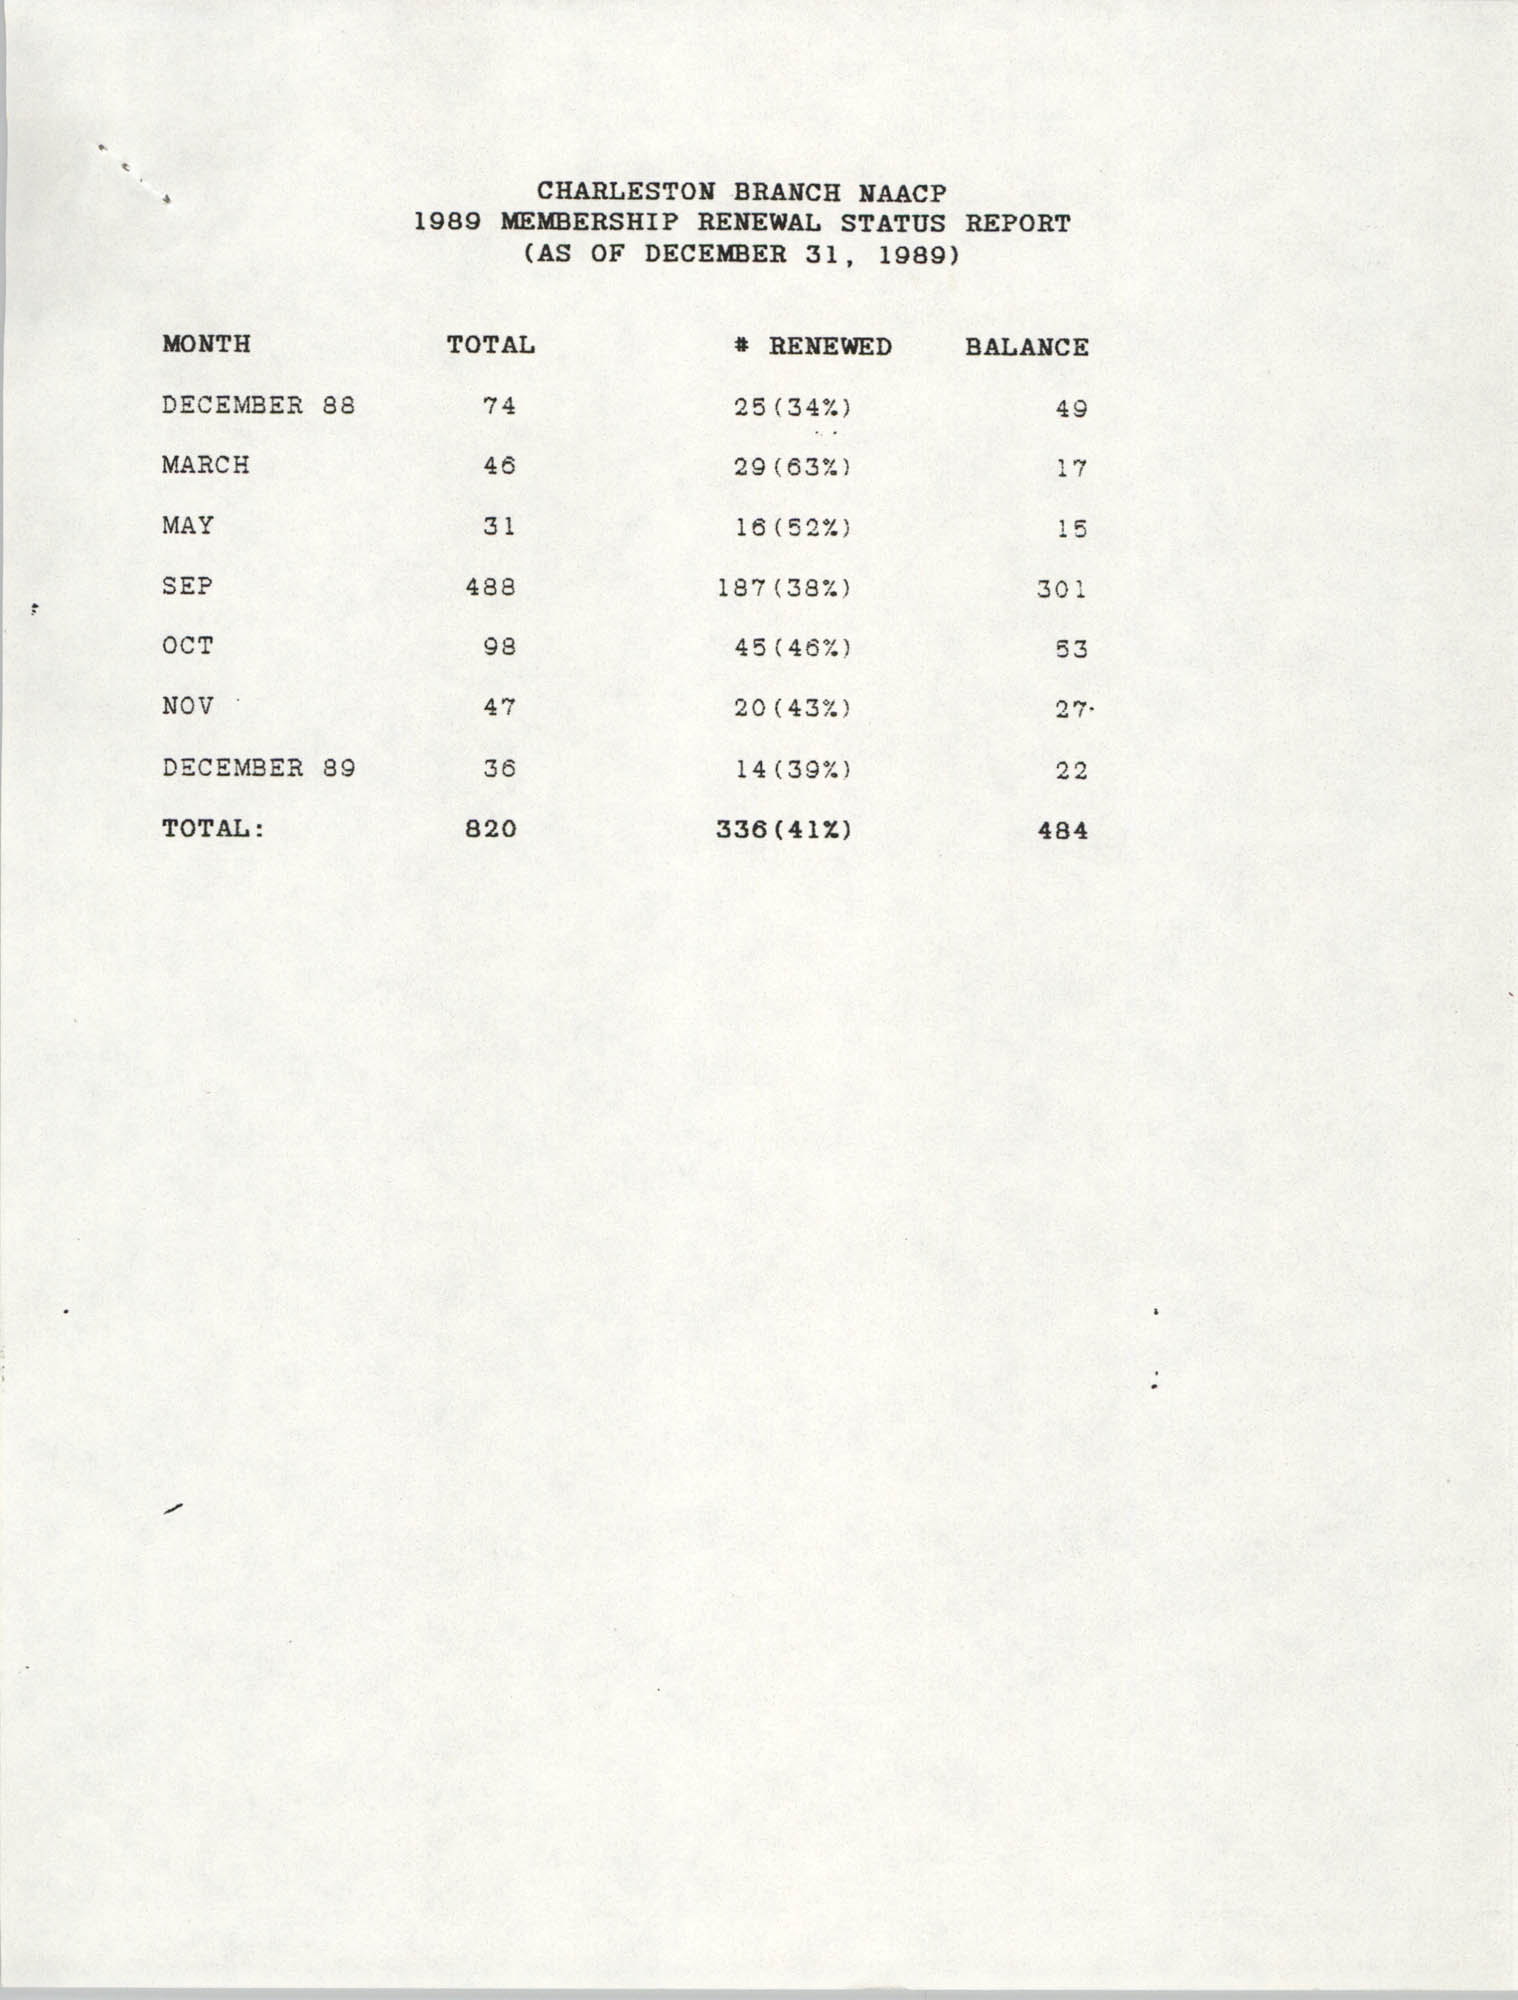 Membership Renewal Status Report, National Association for the Advancement of Colored People, December 31, 1989